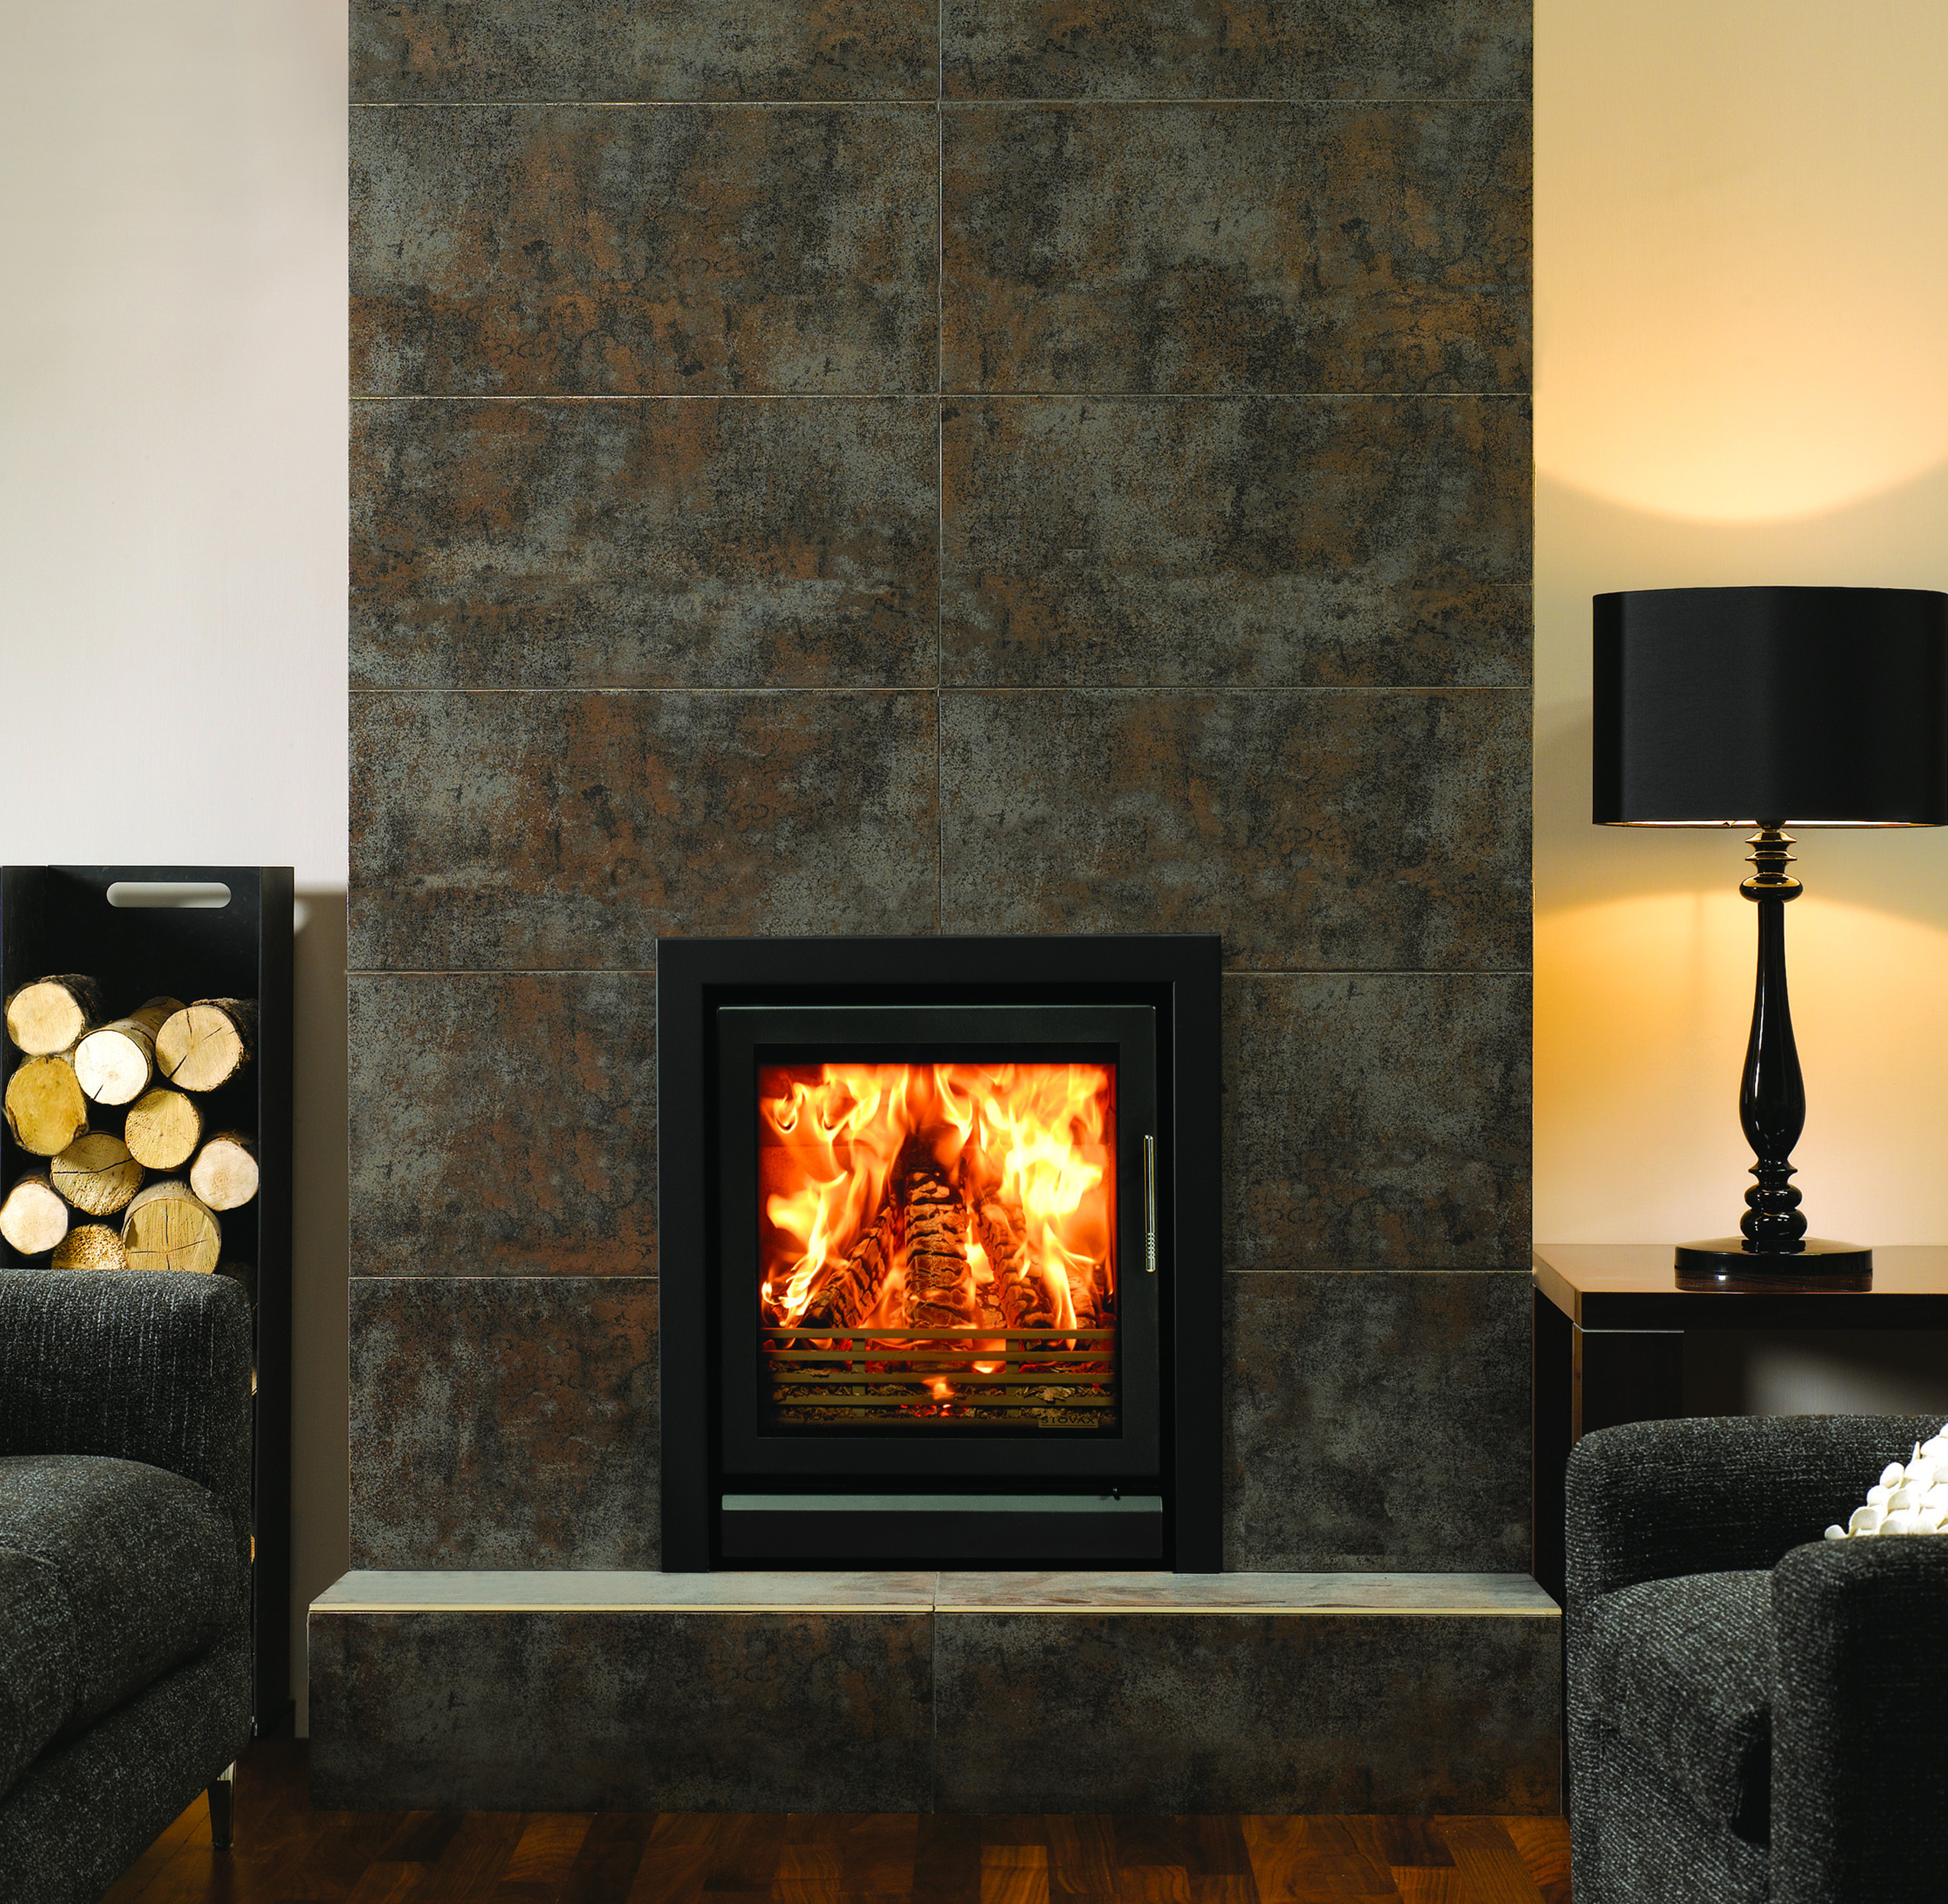 Available From Your Harrogate: Harrogate Fireplace Company